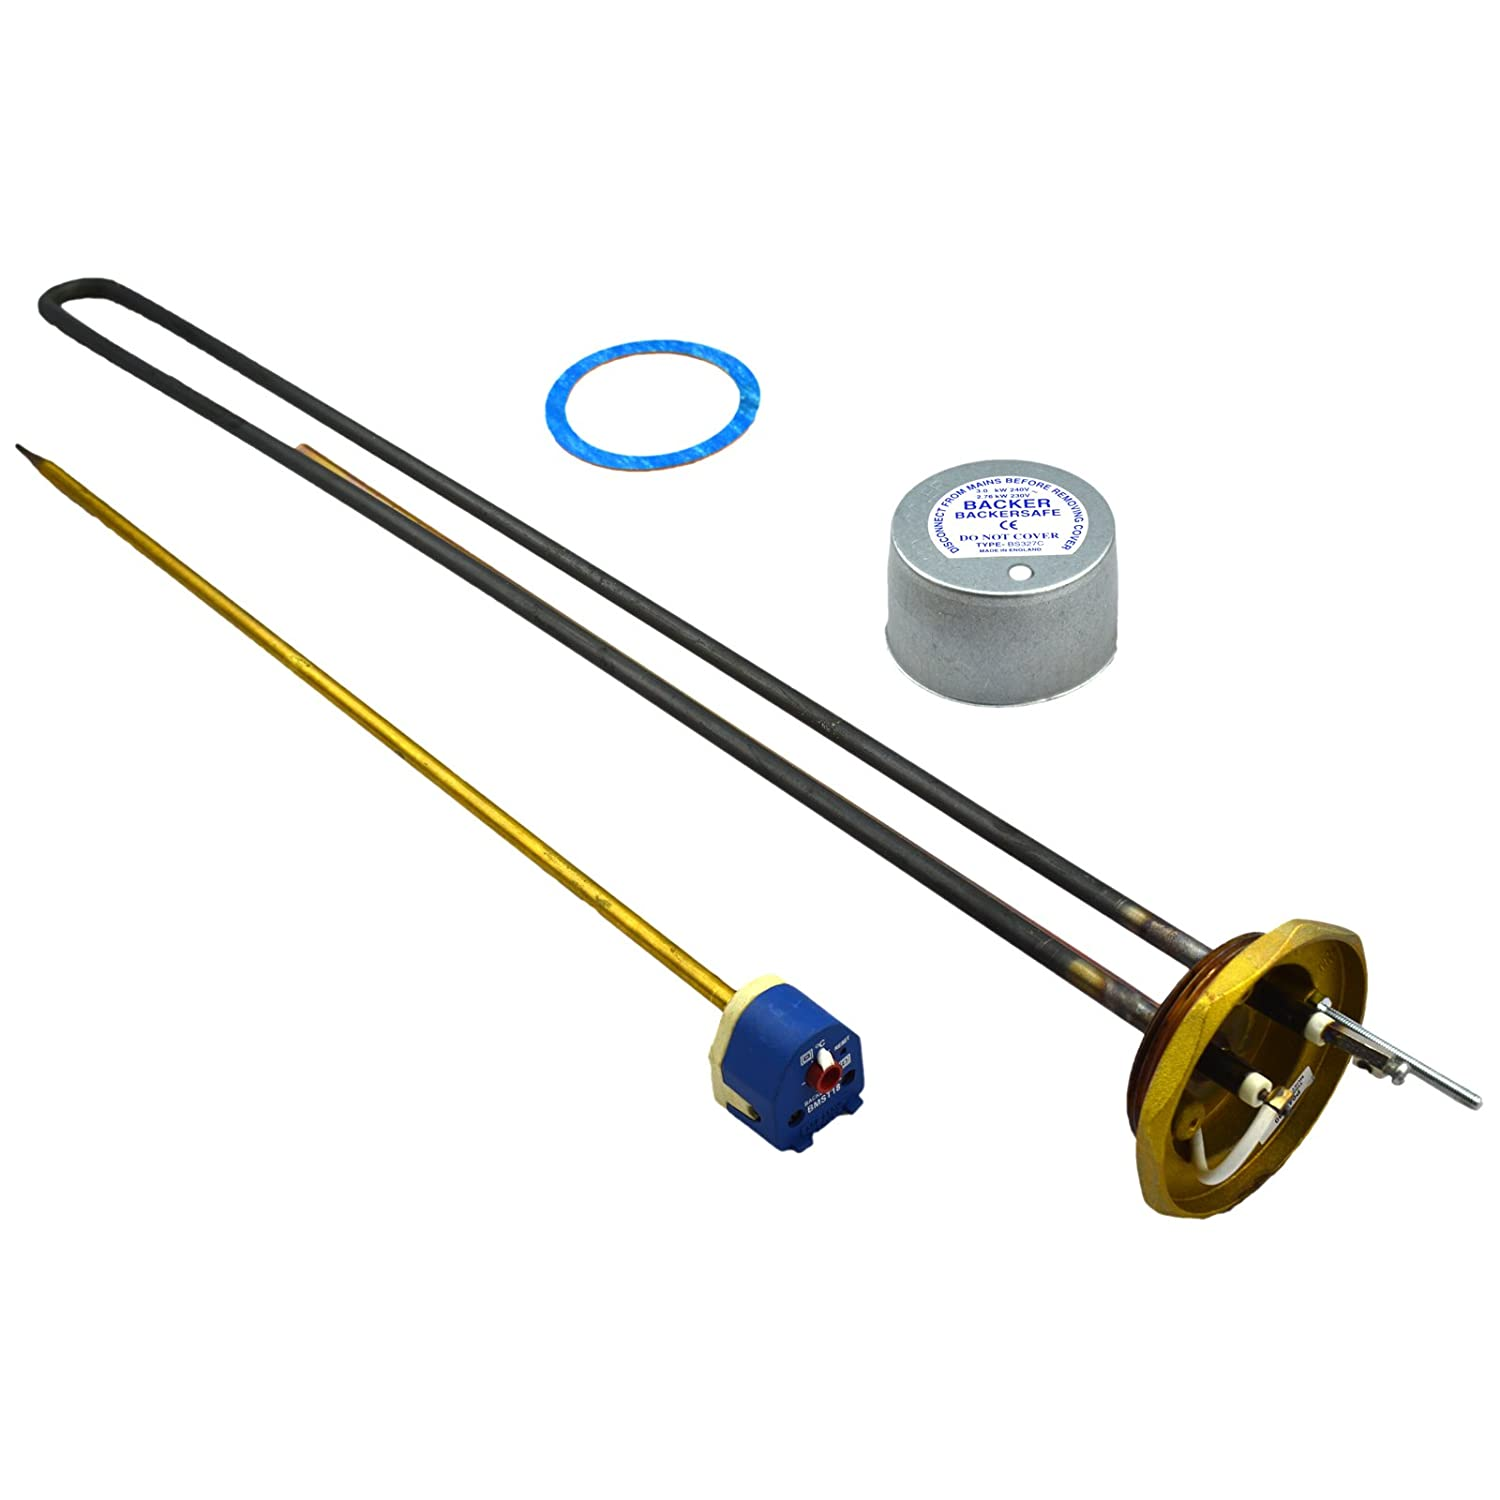 Backer Anti Corrosive Backerloy 27' Immersion Heater Element Fitted With BMST Thermostat with Integral Reset Safety Cut-Out Backer Electric Company Limited